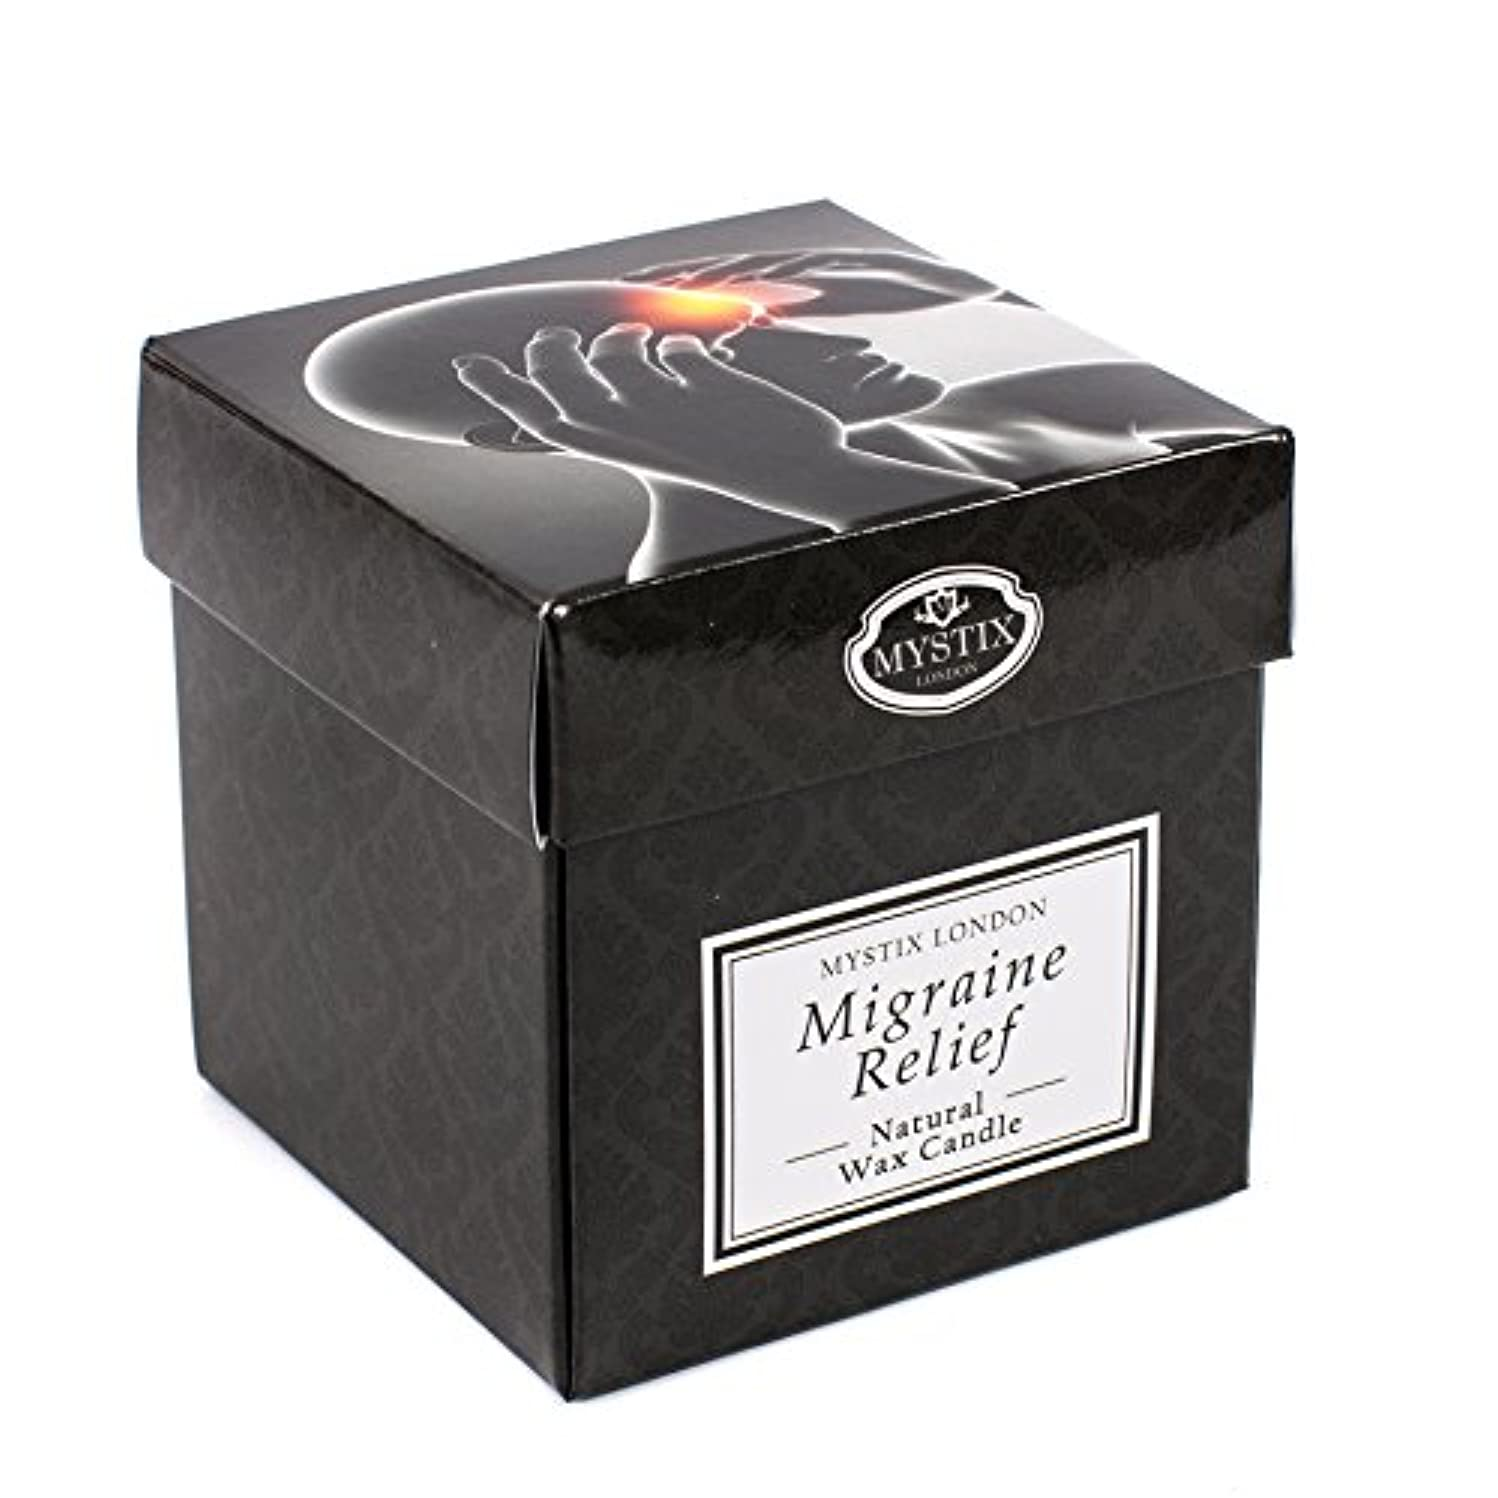 Mystix London | Migraine Relief Scented Candle - Large